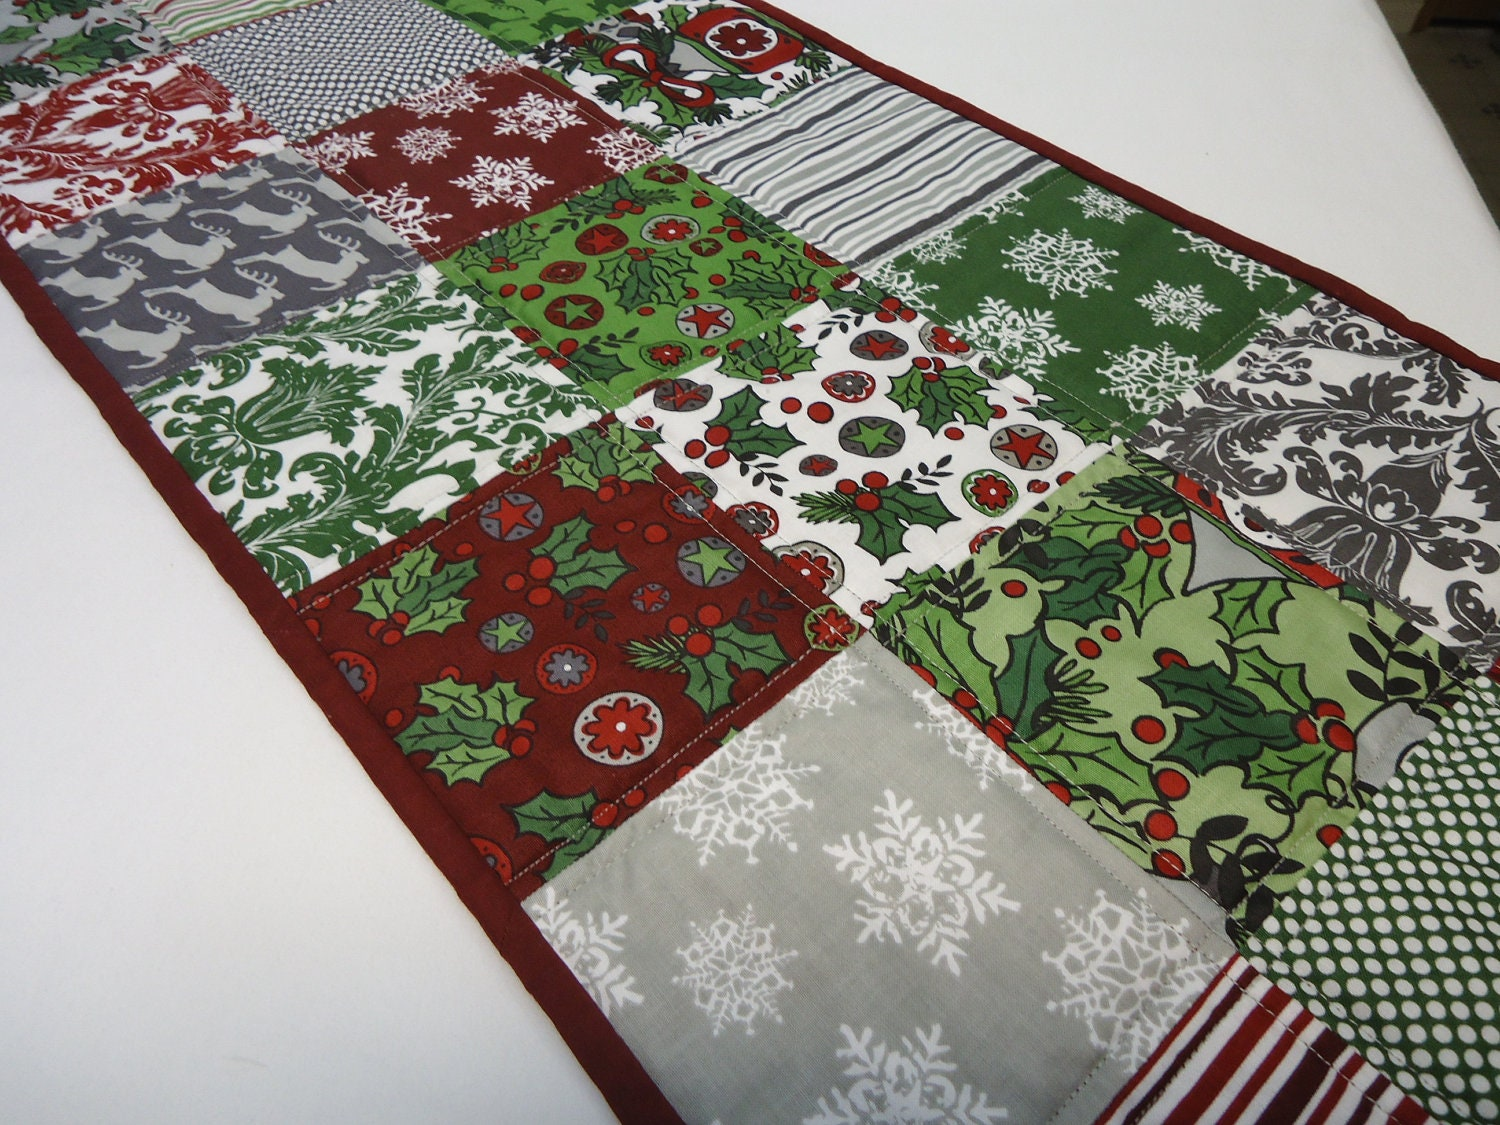 christmas table runner jolly holiday red green white and gray. Black Bedroom Furniture Sets. Home Design Ideas